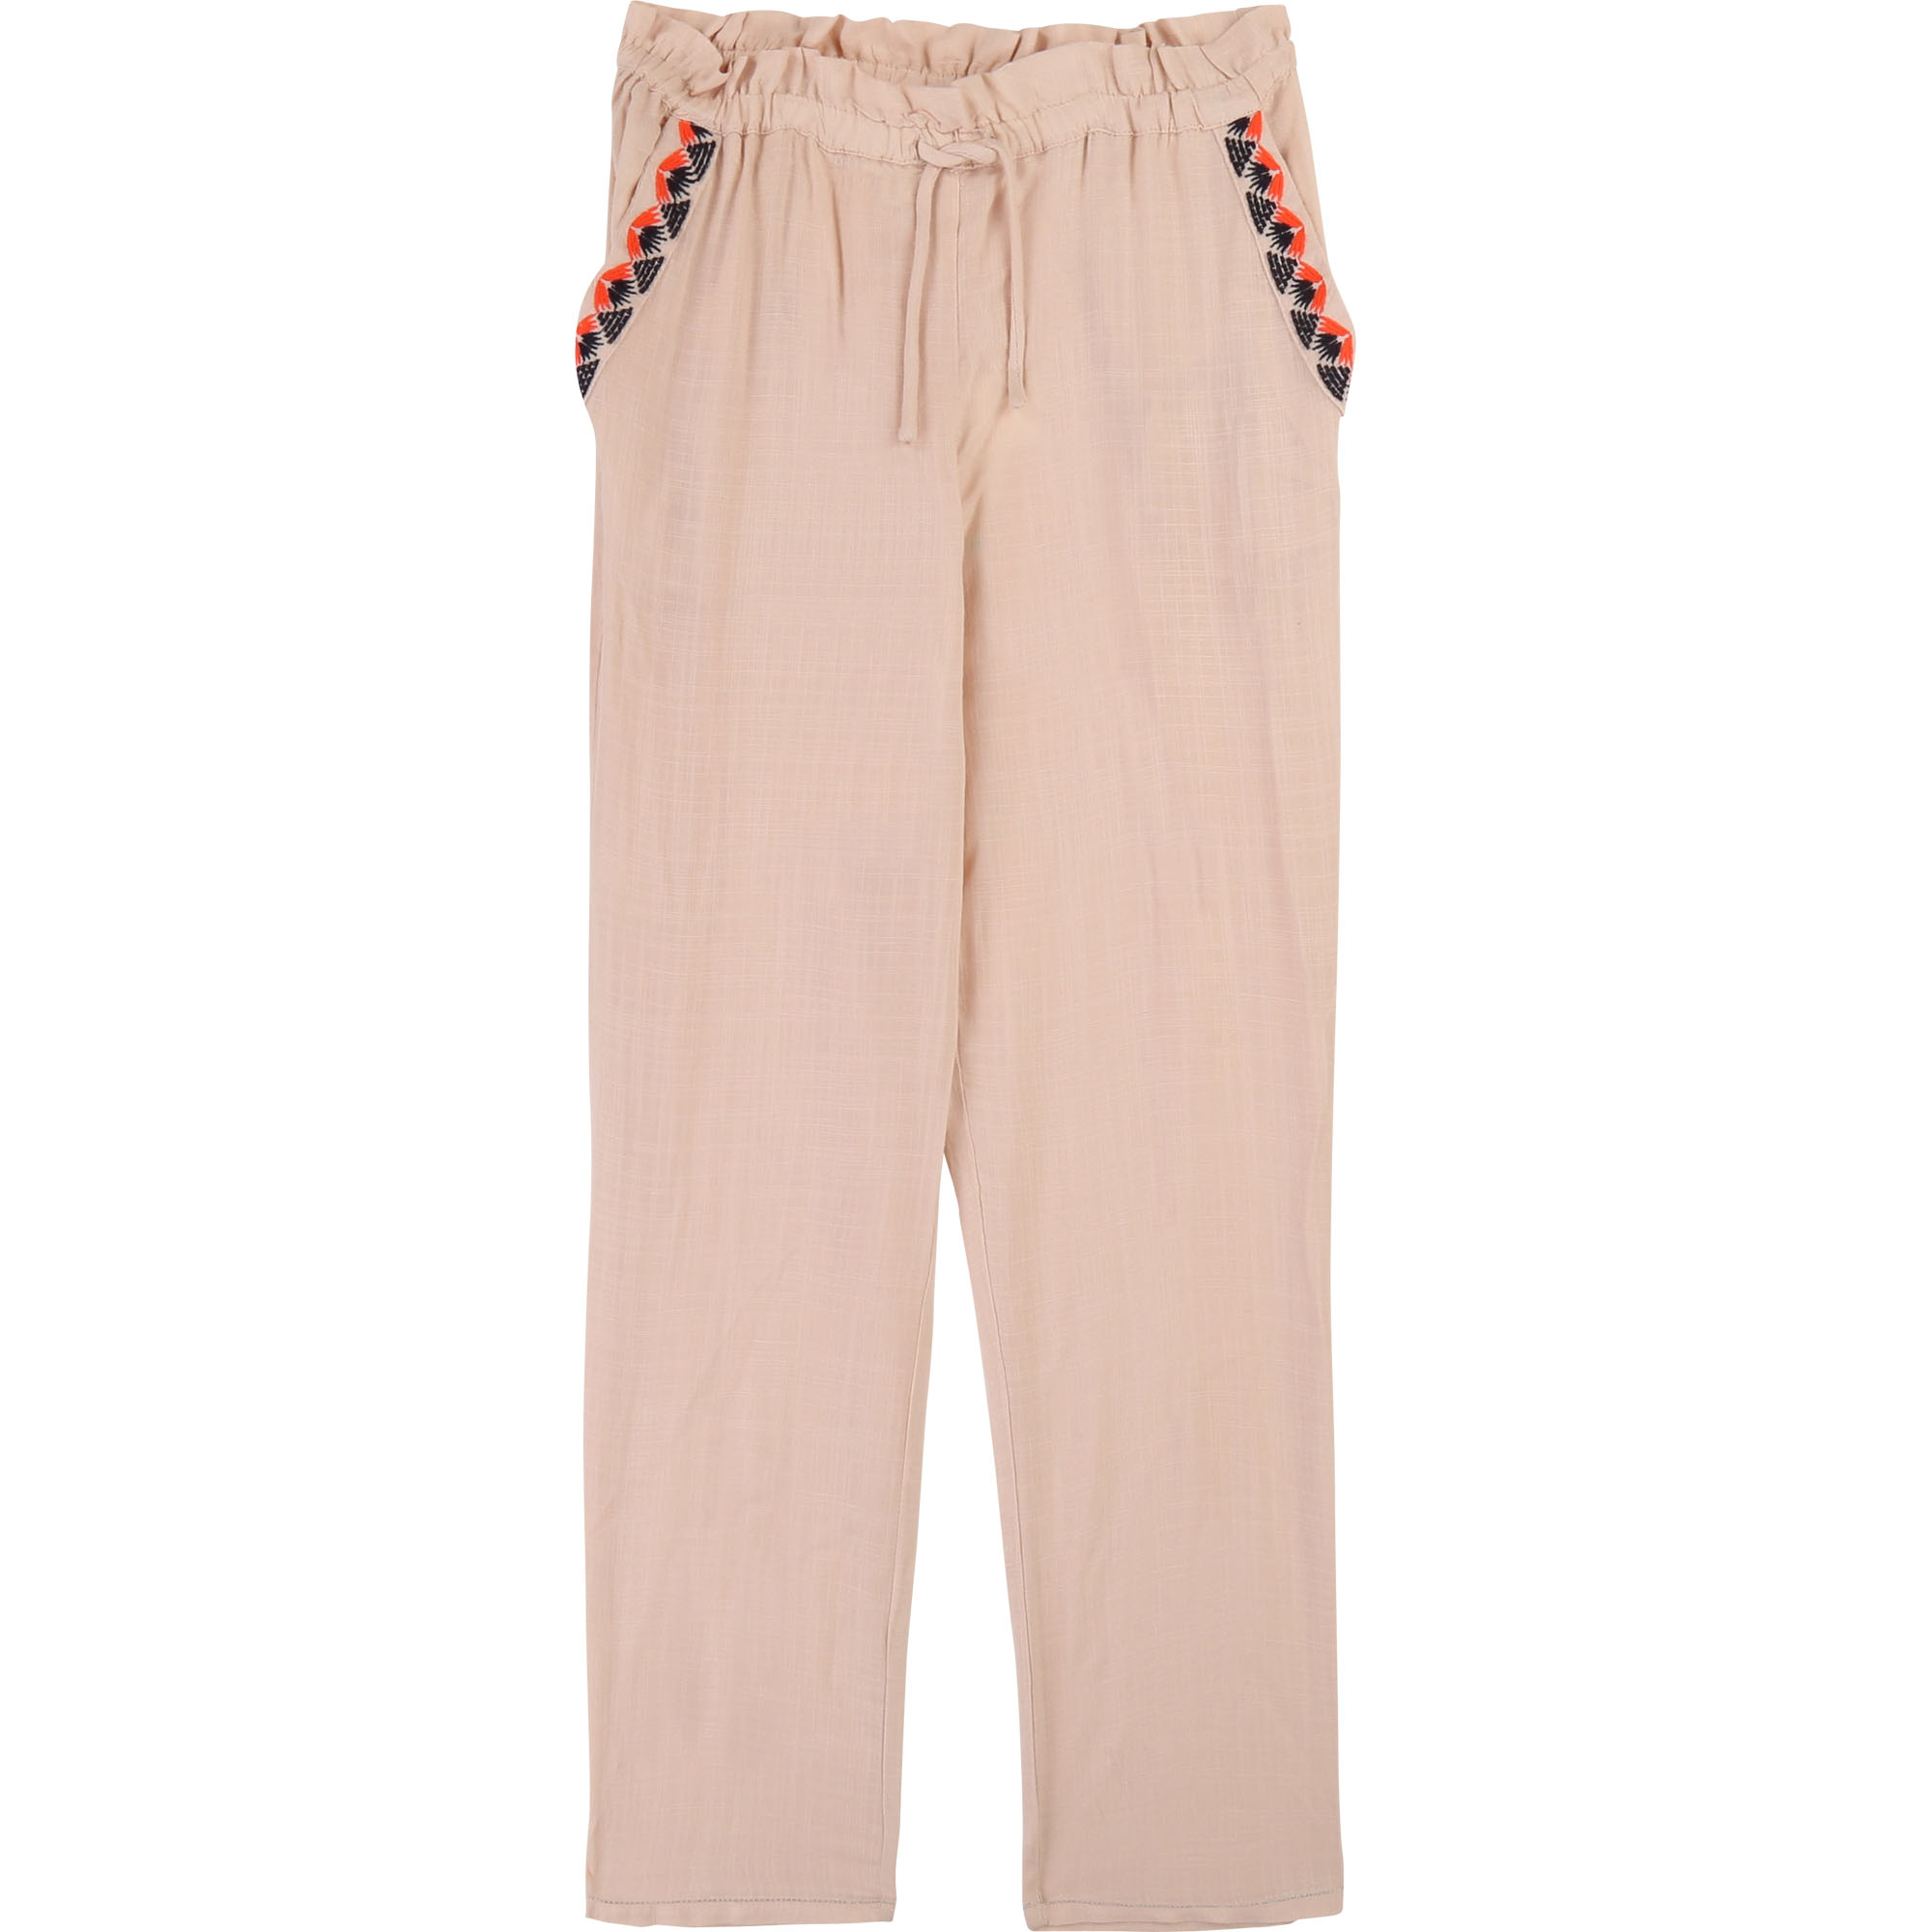 Embroidered pocket trousers CARREMENT BEAU for GIRL